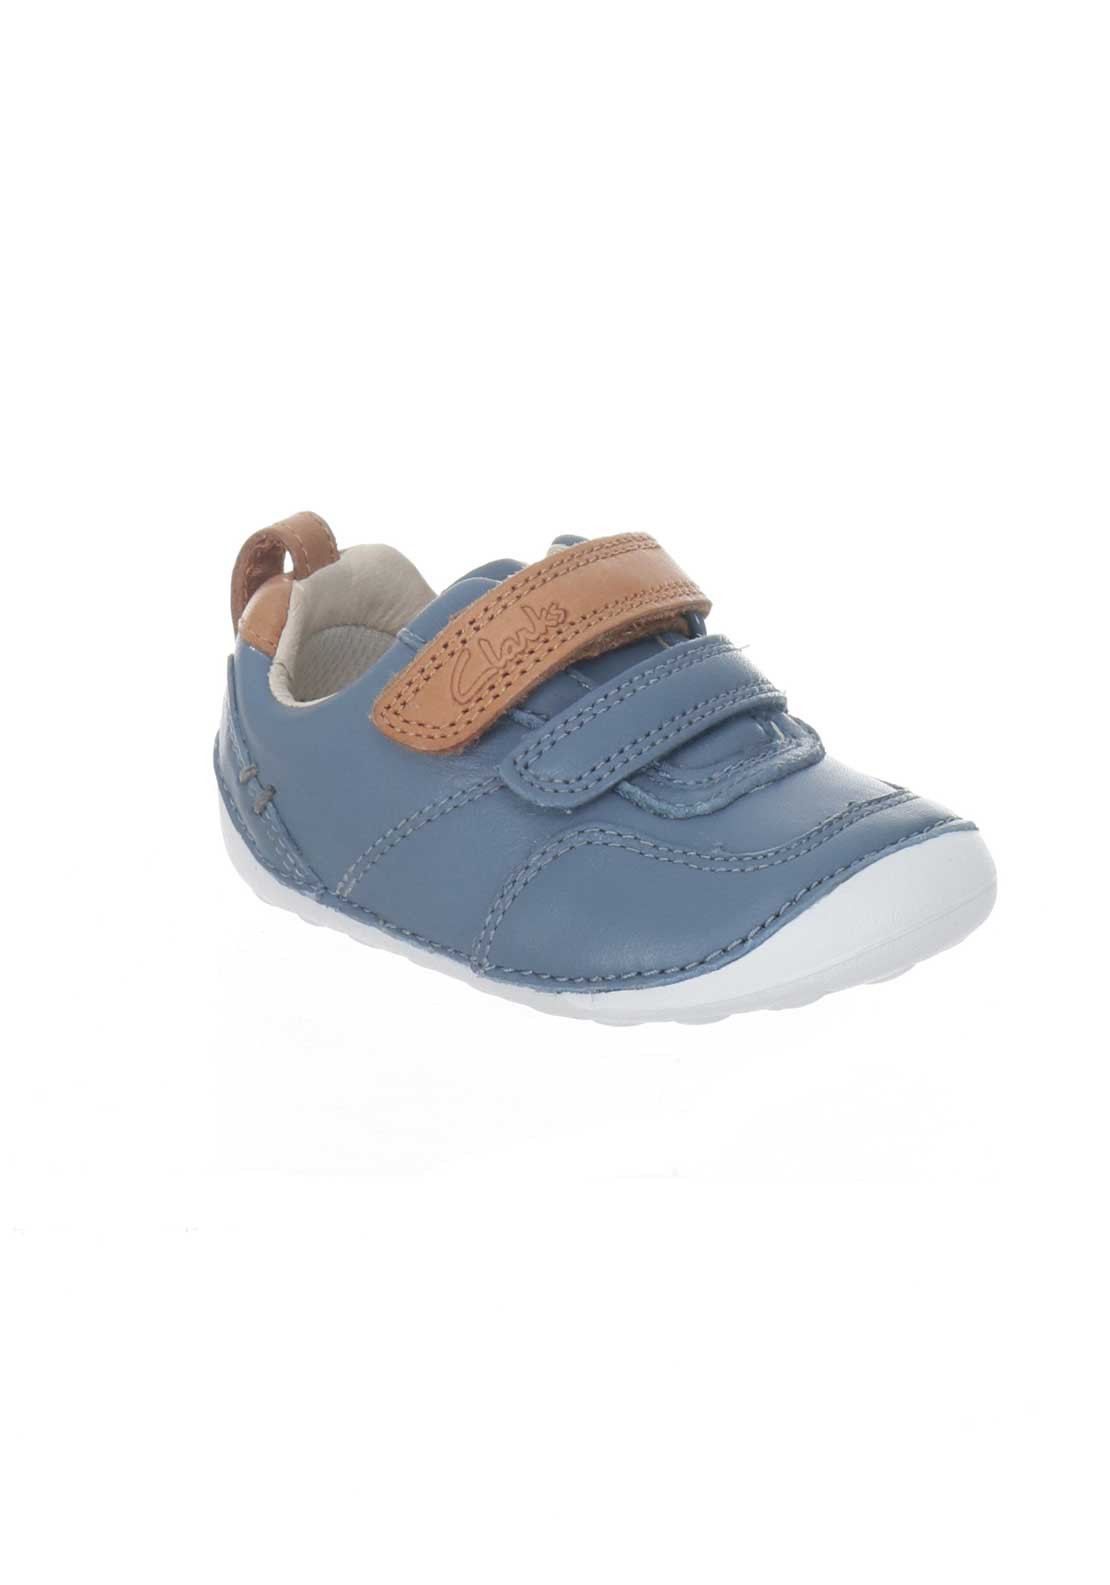 5d8f895b668 Clarks Baby Boys Leather Tiny Aspire Pre Shoes